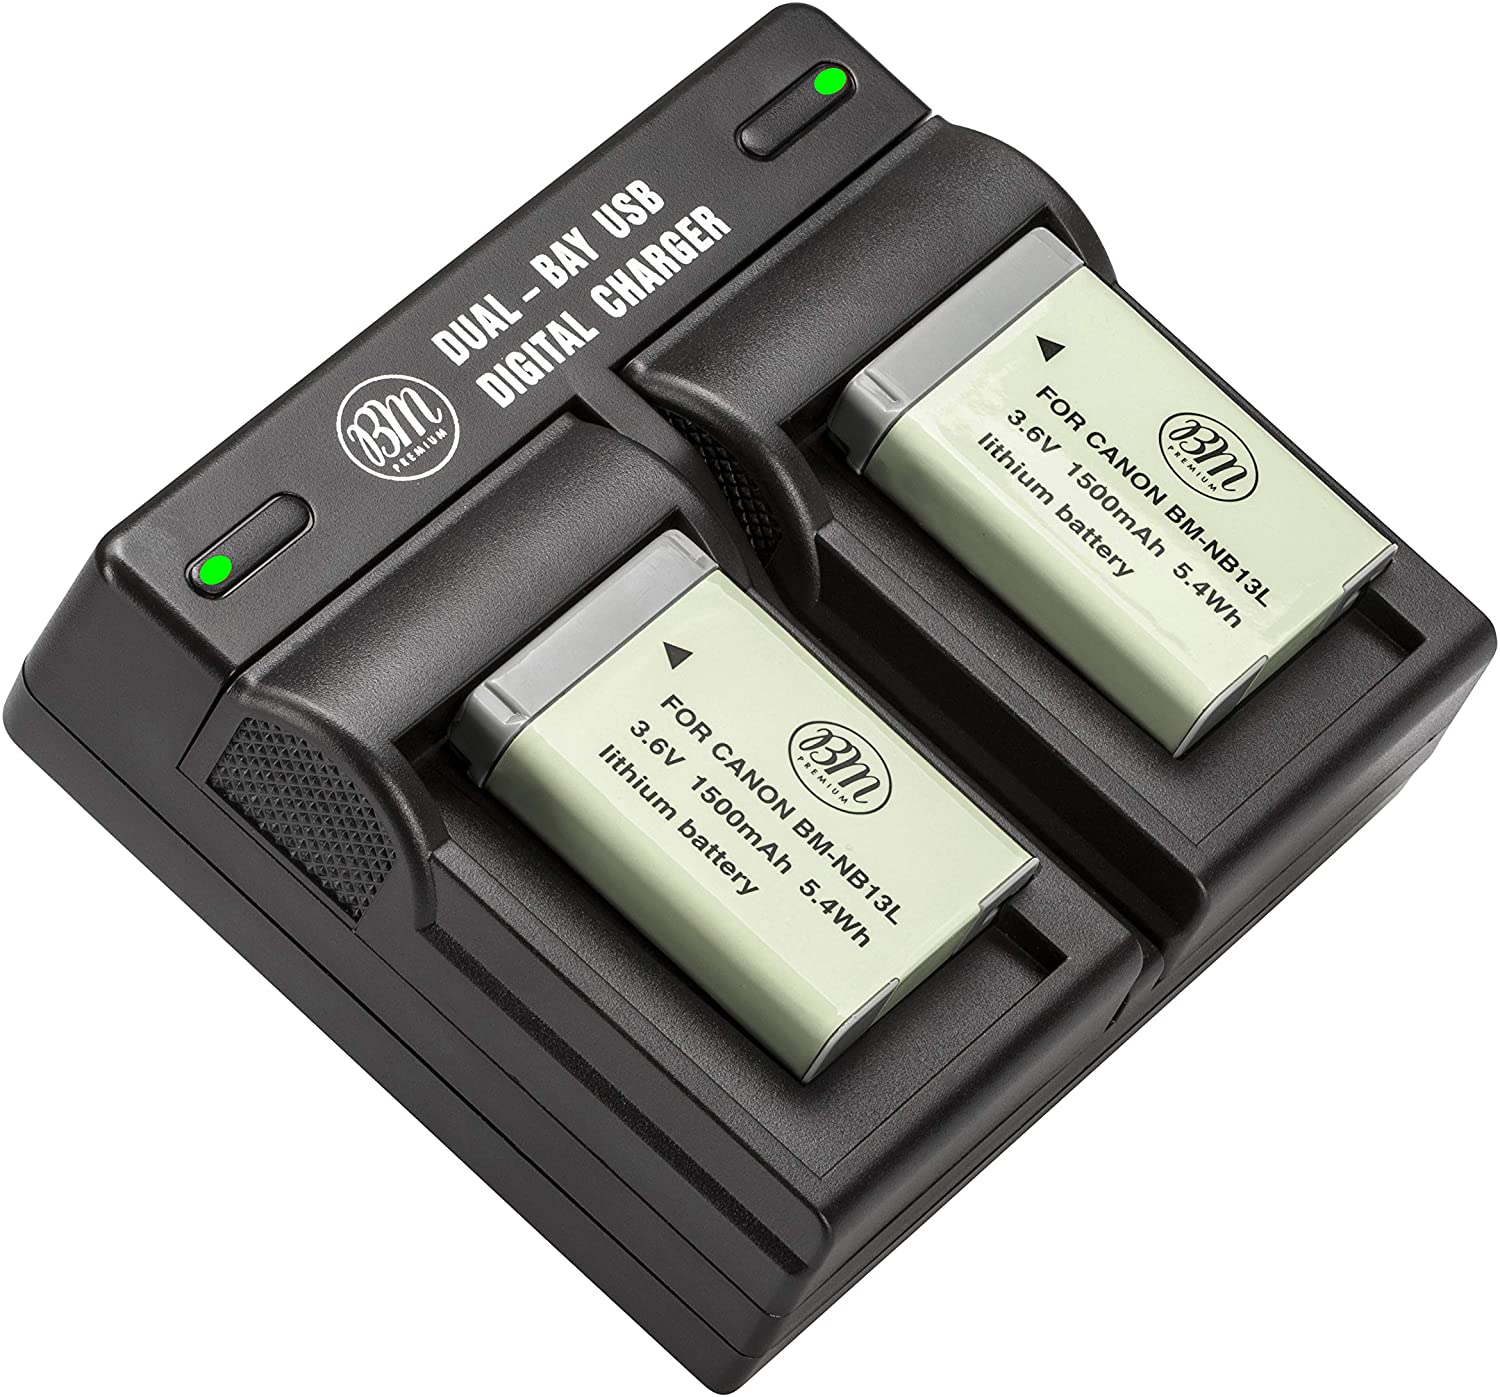 BM 2-Pack of NB-13L Batteries and Dual Battery Charger for Canon PowerShot SX740 HS, G1 X Mark III, G5 X, G5 X Mark II, G7 X, G7 X Mark II, G7 X Mark III, G9 X, G9 X Mark II, SX620 HS, SX720 HS Camera : Camera & Photo